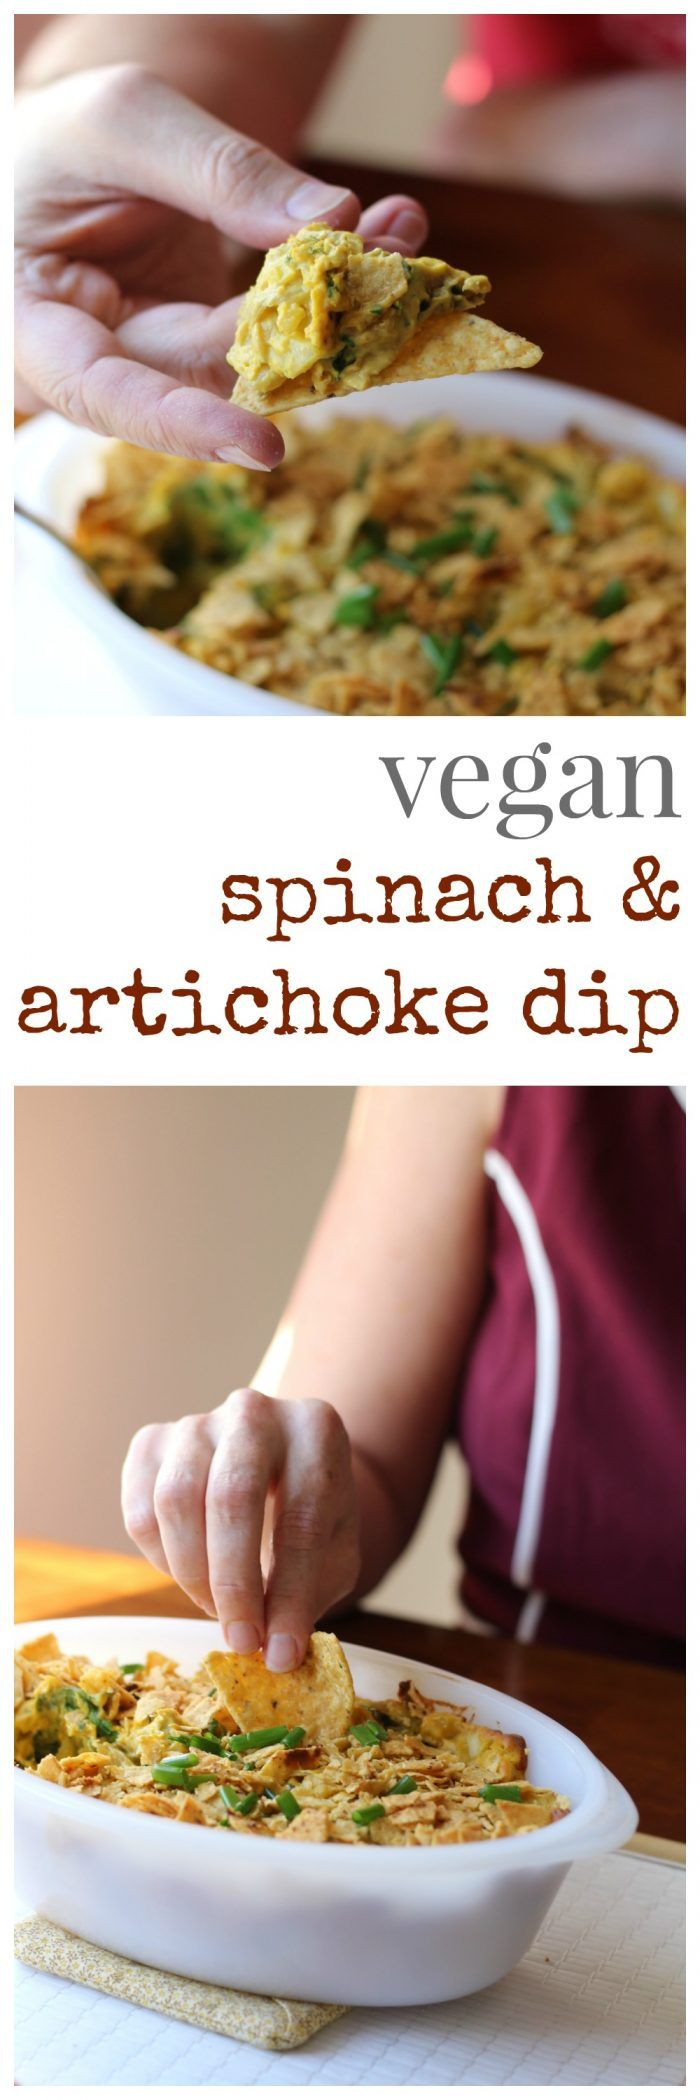 Vegan spinach & artichoke dip: Creamy, decadent, and delicious! You'll never believe it's made with cashews. Gluten-free & soy-free optional. | cadryskitchen.com via @cadryskitchen #vegan #glutenfree #oilfree #dip #appetizer